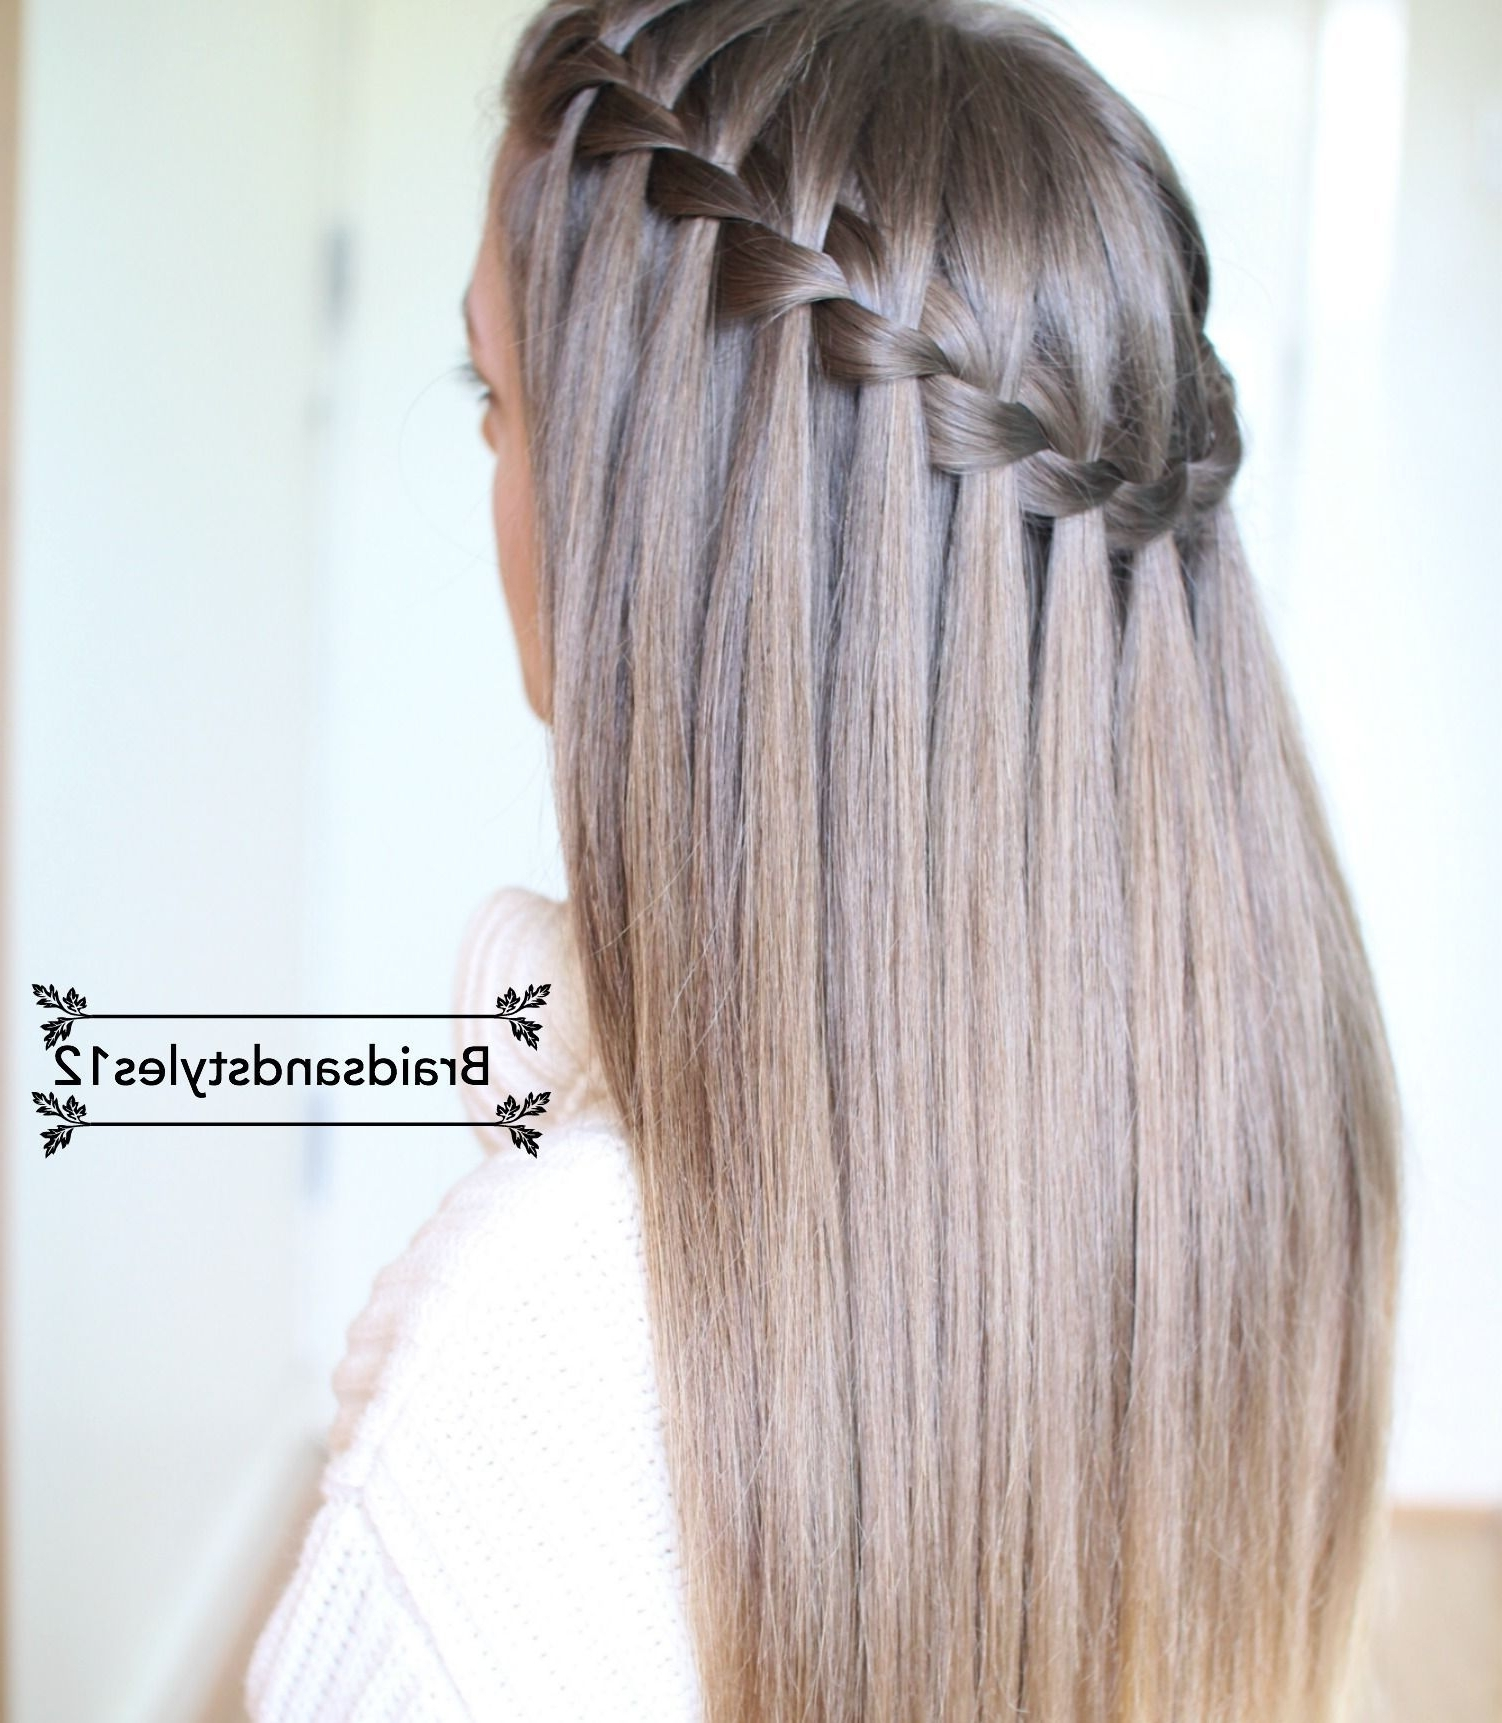 Fashionable Braided Hairstyles For Straight Hair Intended For Stunning Braided Hairstyles For Short Straight Hair Ideas Styles (View 9 of 15)